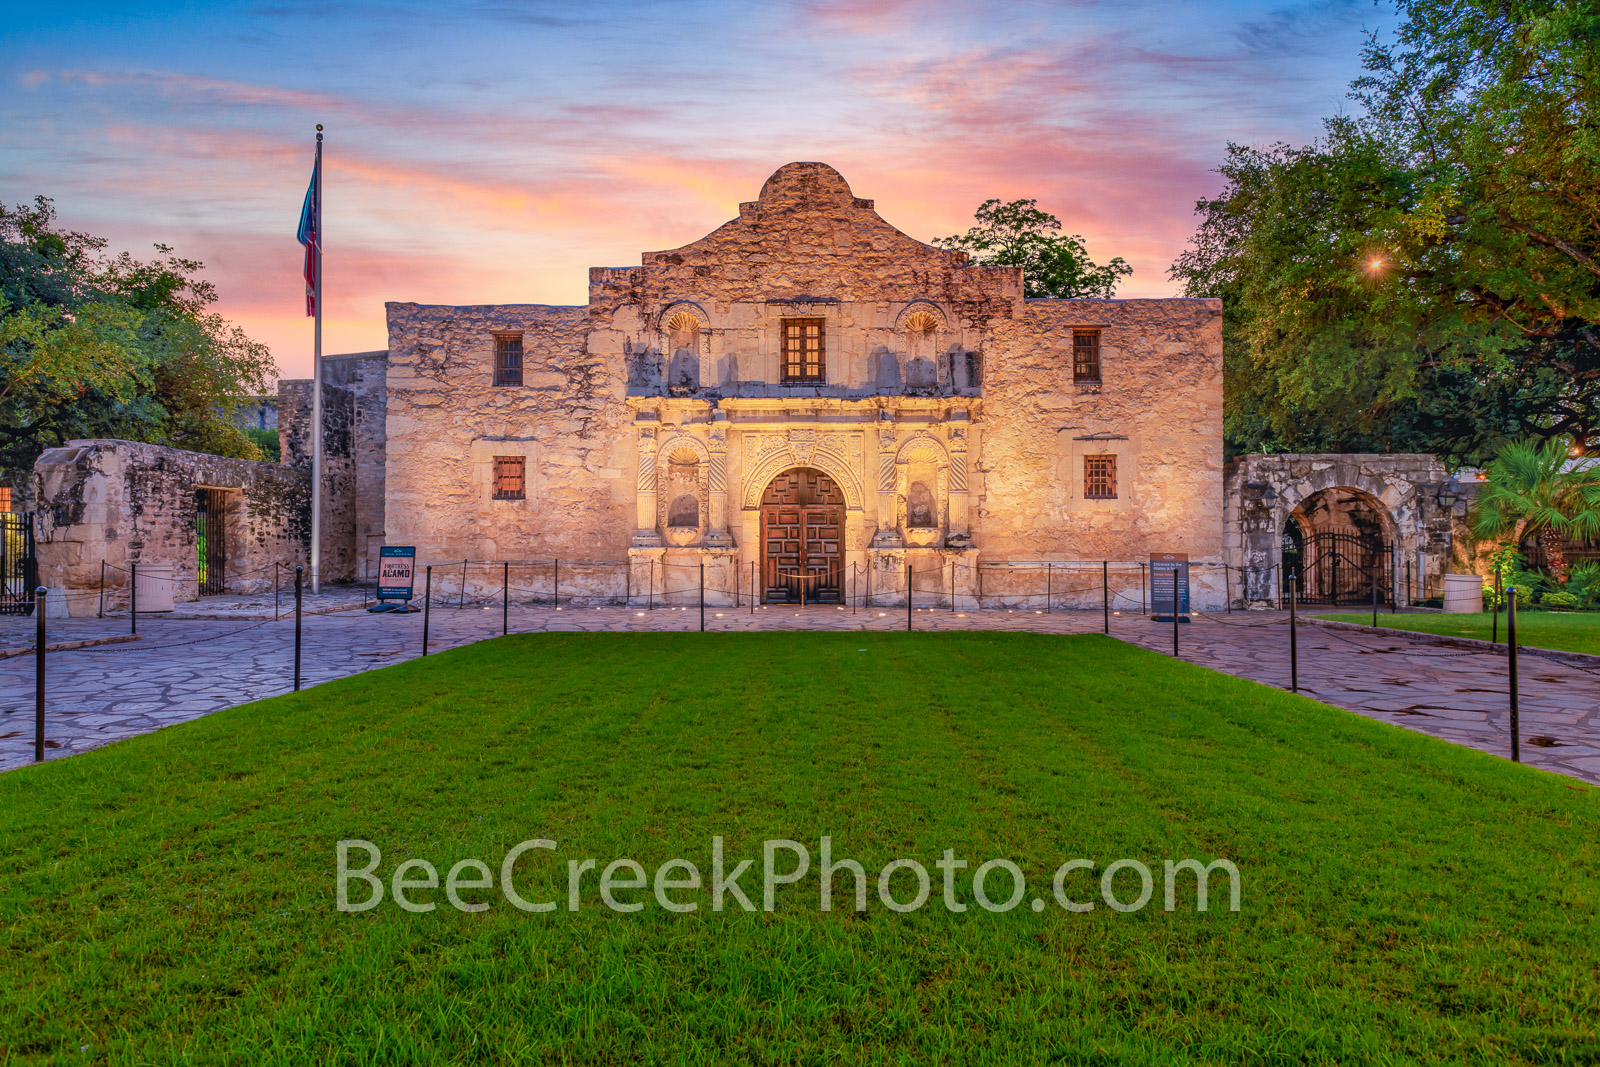 The Alamo at Sunrise, Alamo, The alamo, sunrise, San Antonio, texas,  San Antonio Missions National Historical Park., world heritage site, history, landmark, downtown, city, missions, Santa Anna, mexi, photo